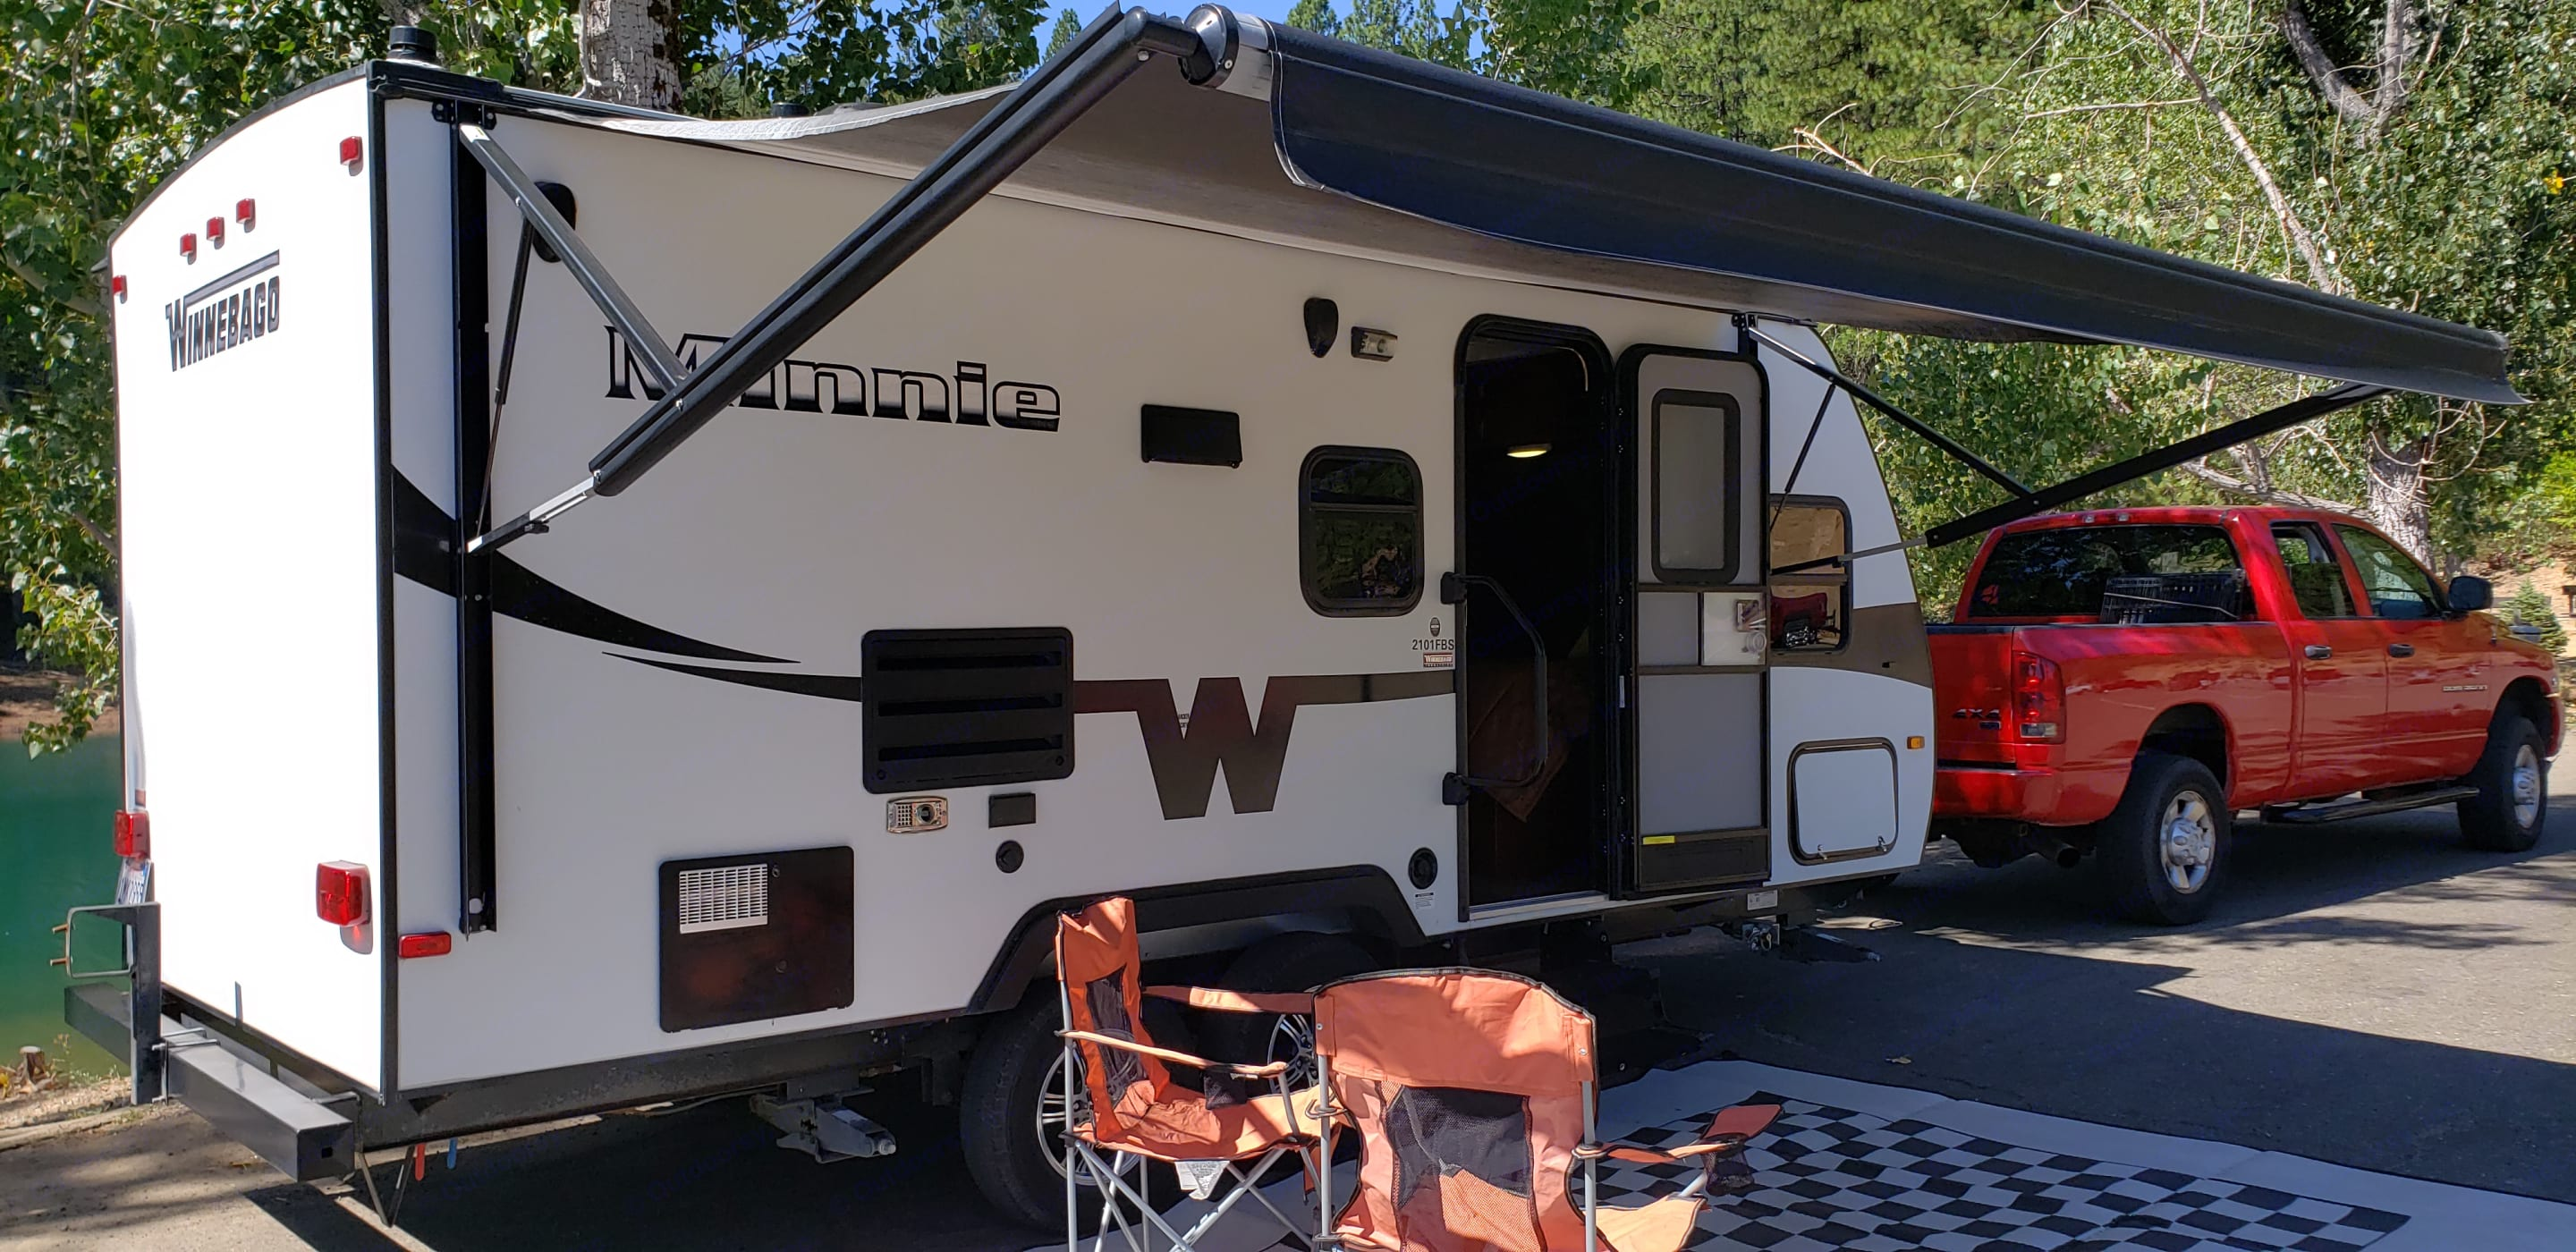 Electric awning for shade. Winnebago Minnie 2015